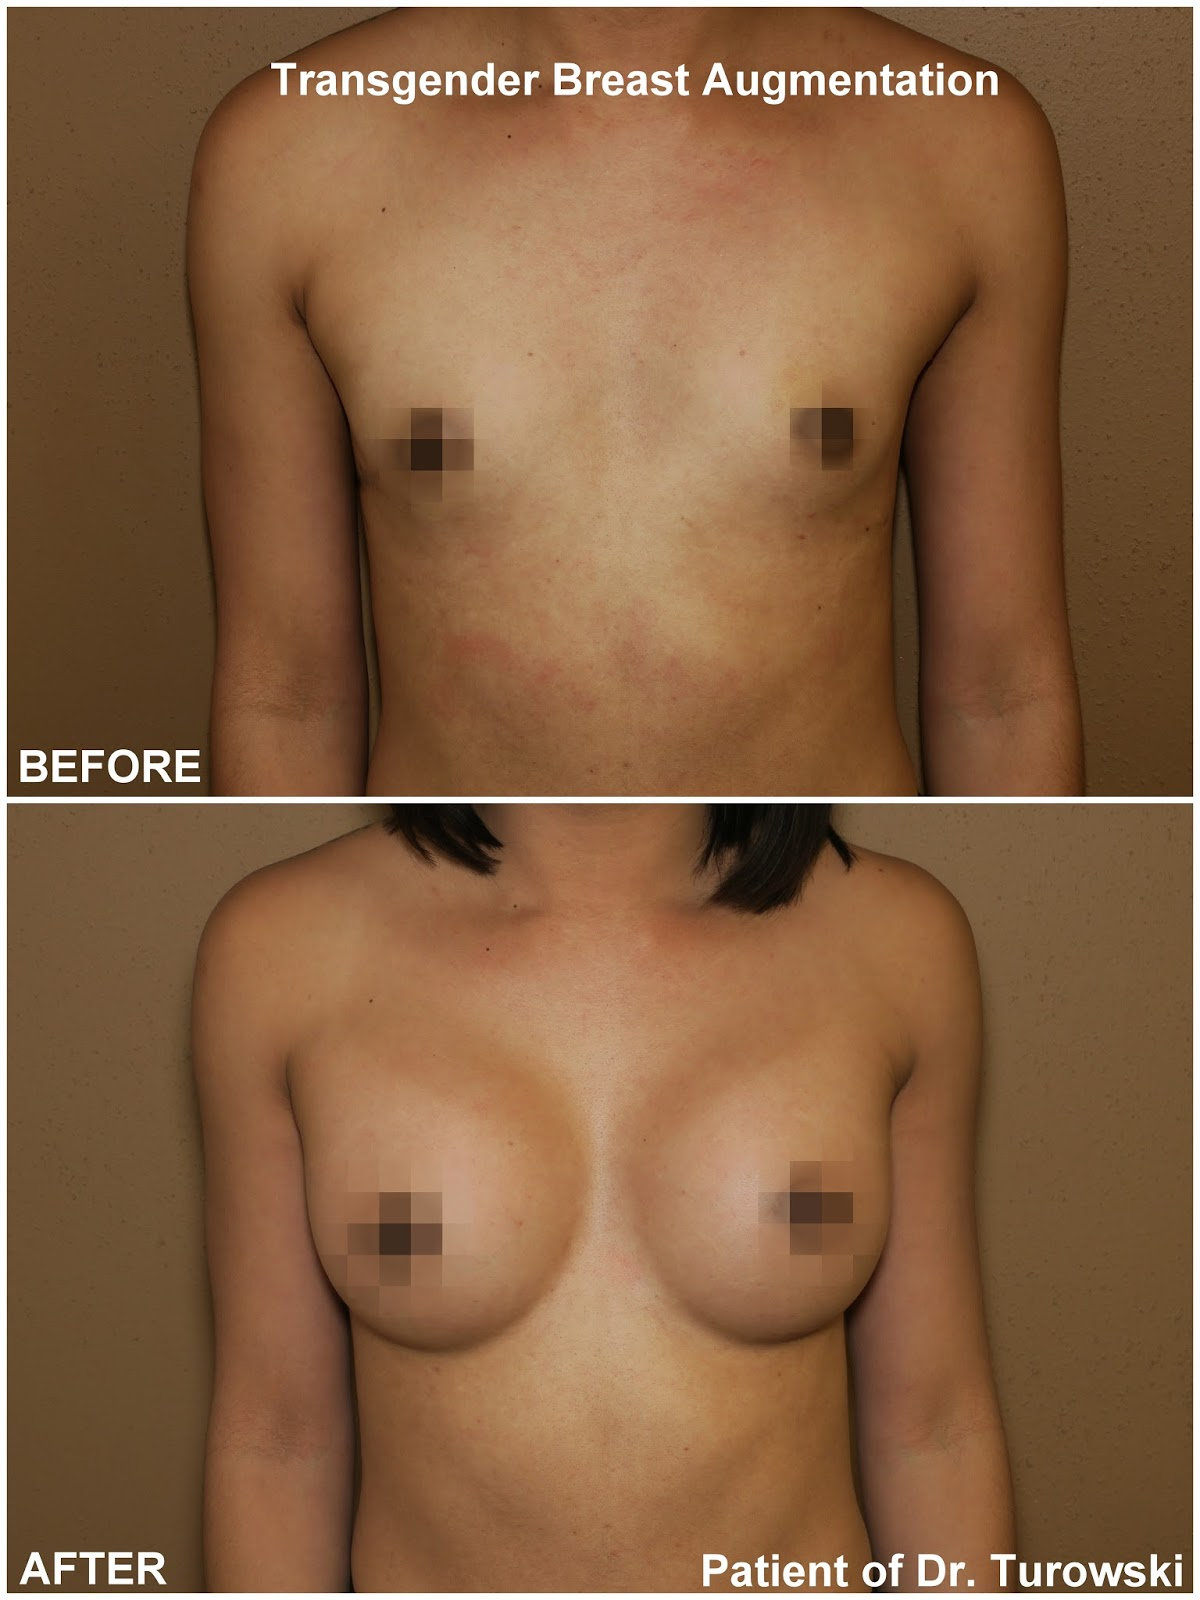 Transgender Surgery Female To Male Pictures